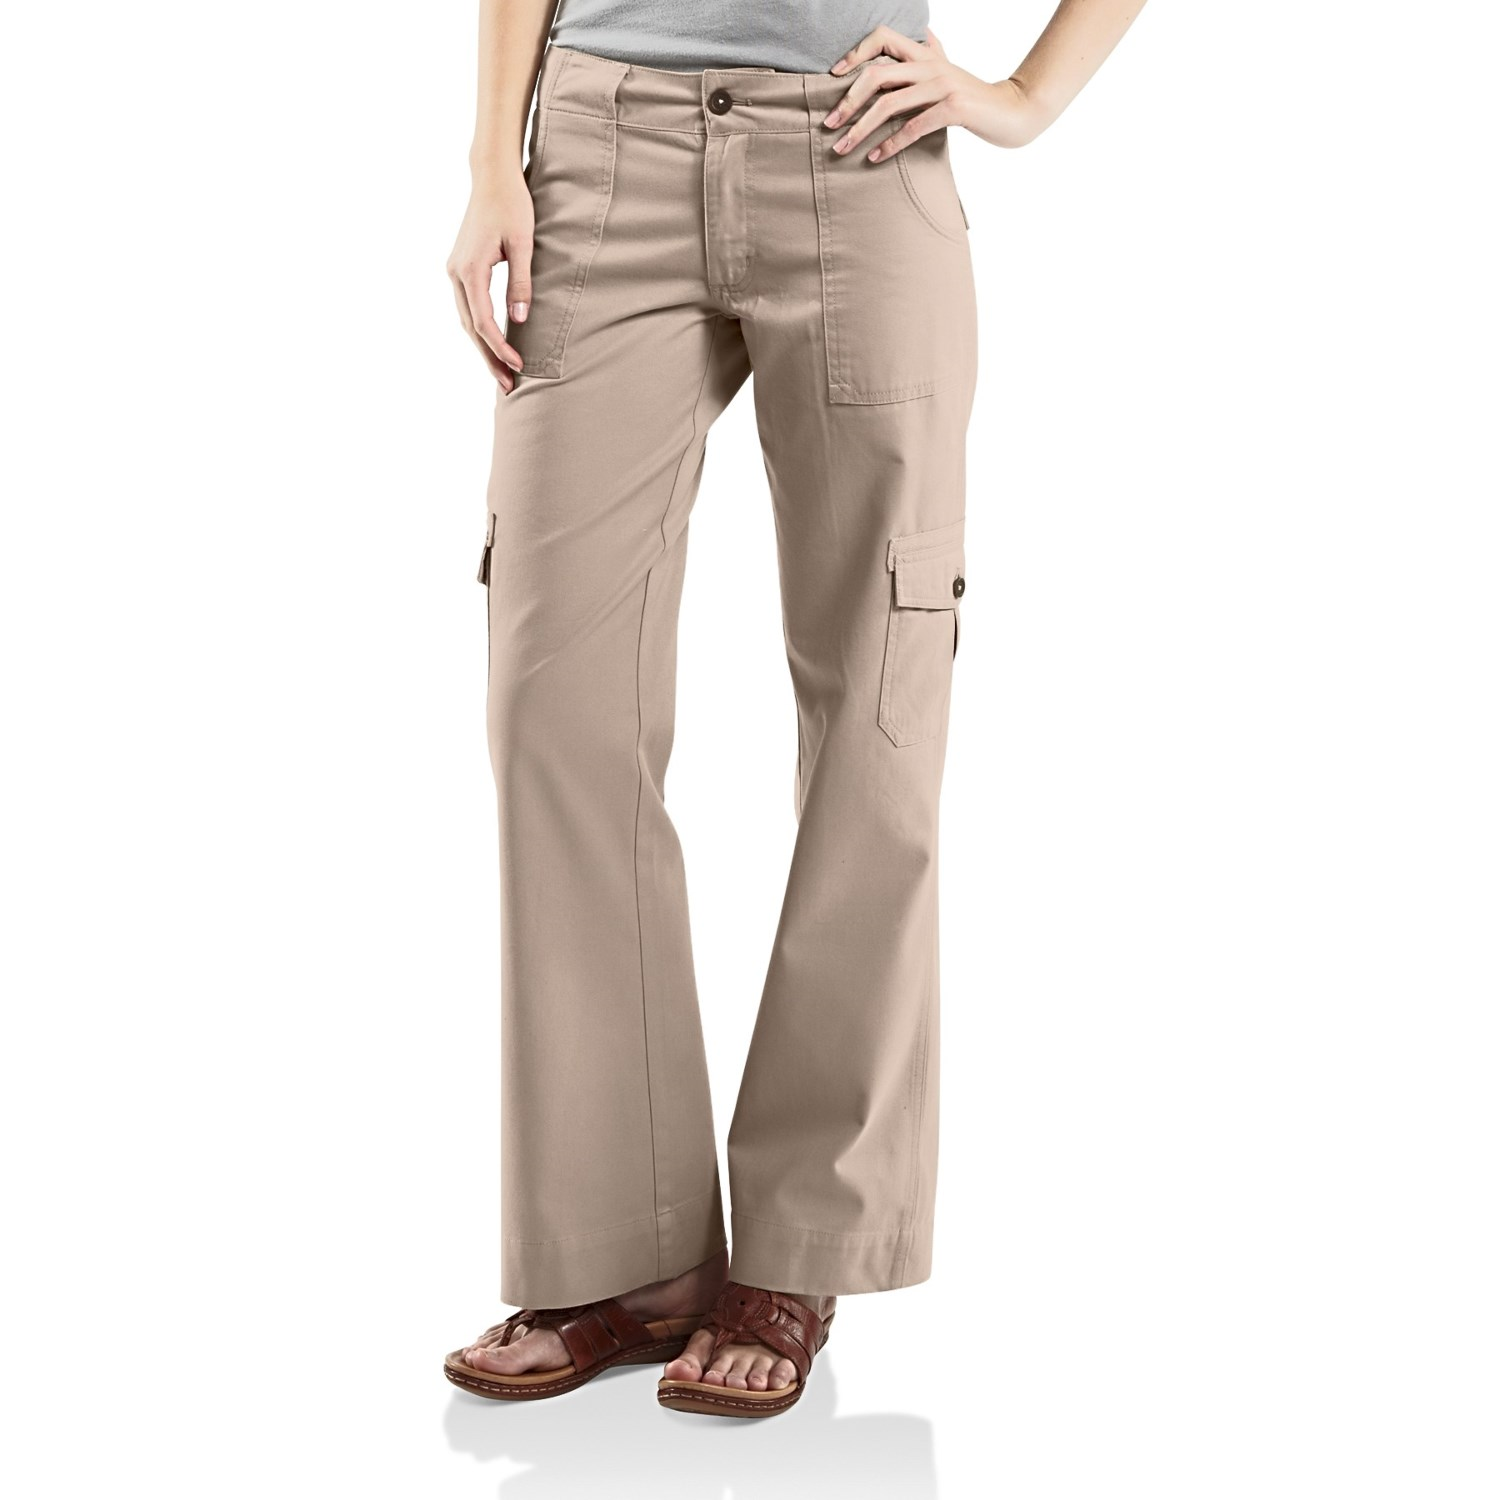 Elegant Find This Pin And More On My Career Pharmacy Tech ButterSoft Scrubs By UA Ladies Jean Style Mid Rise Scrub